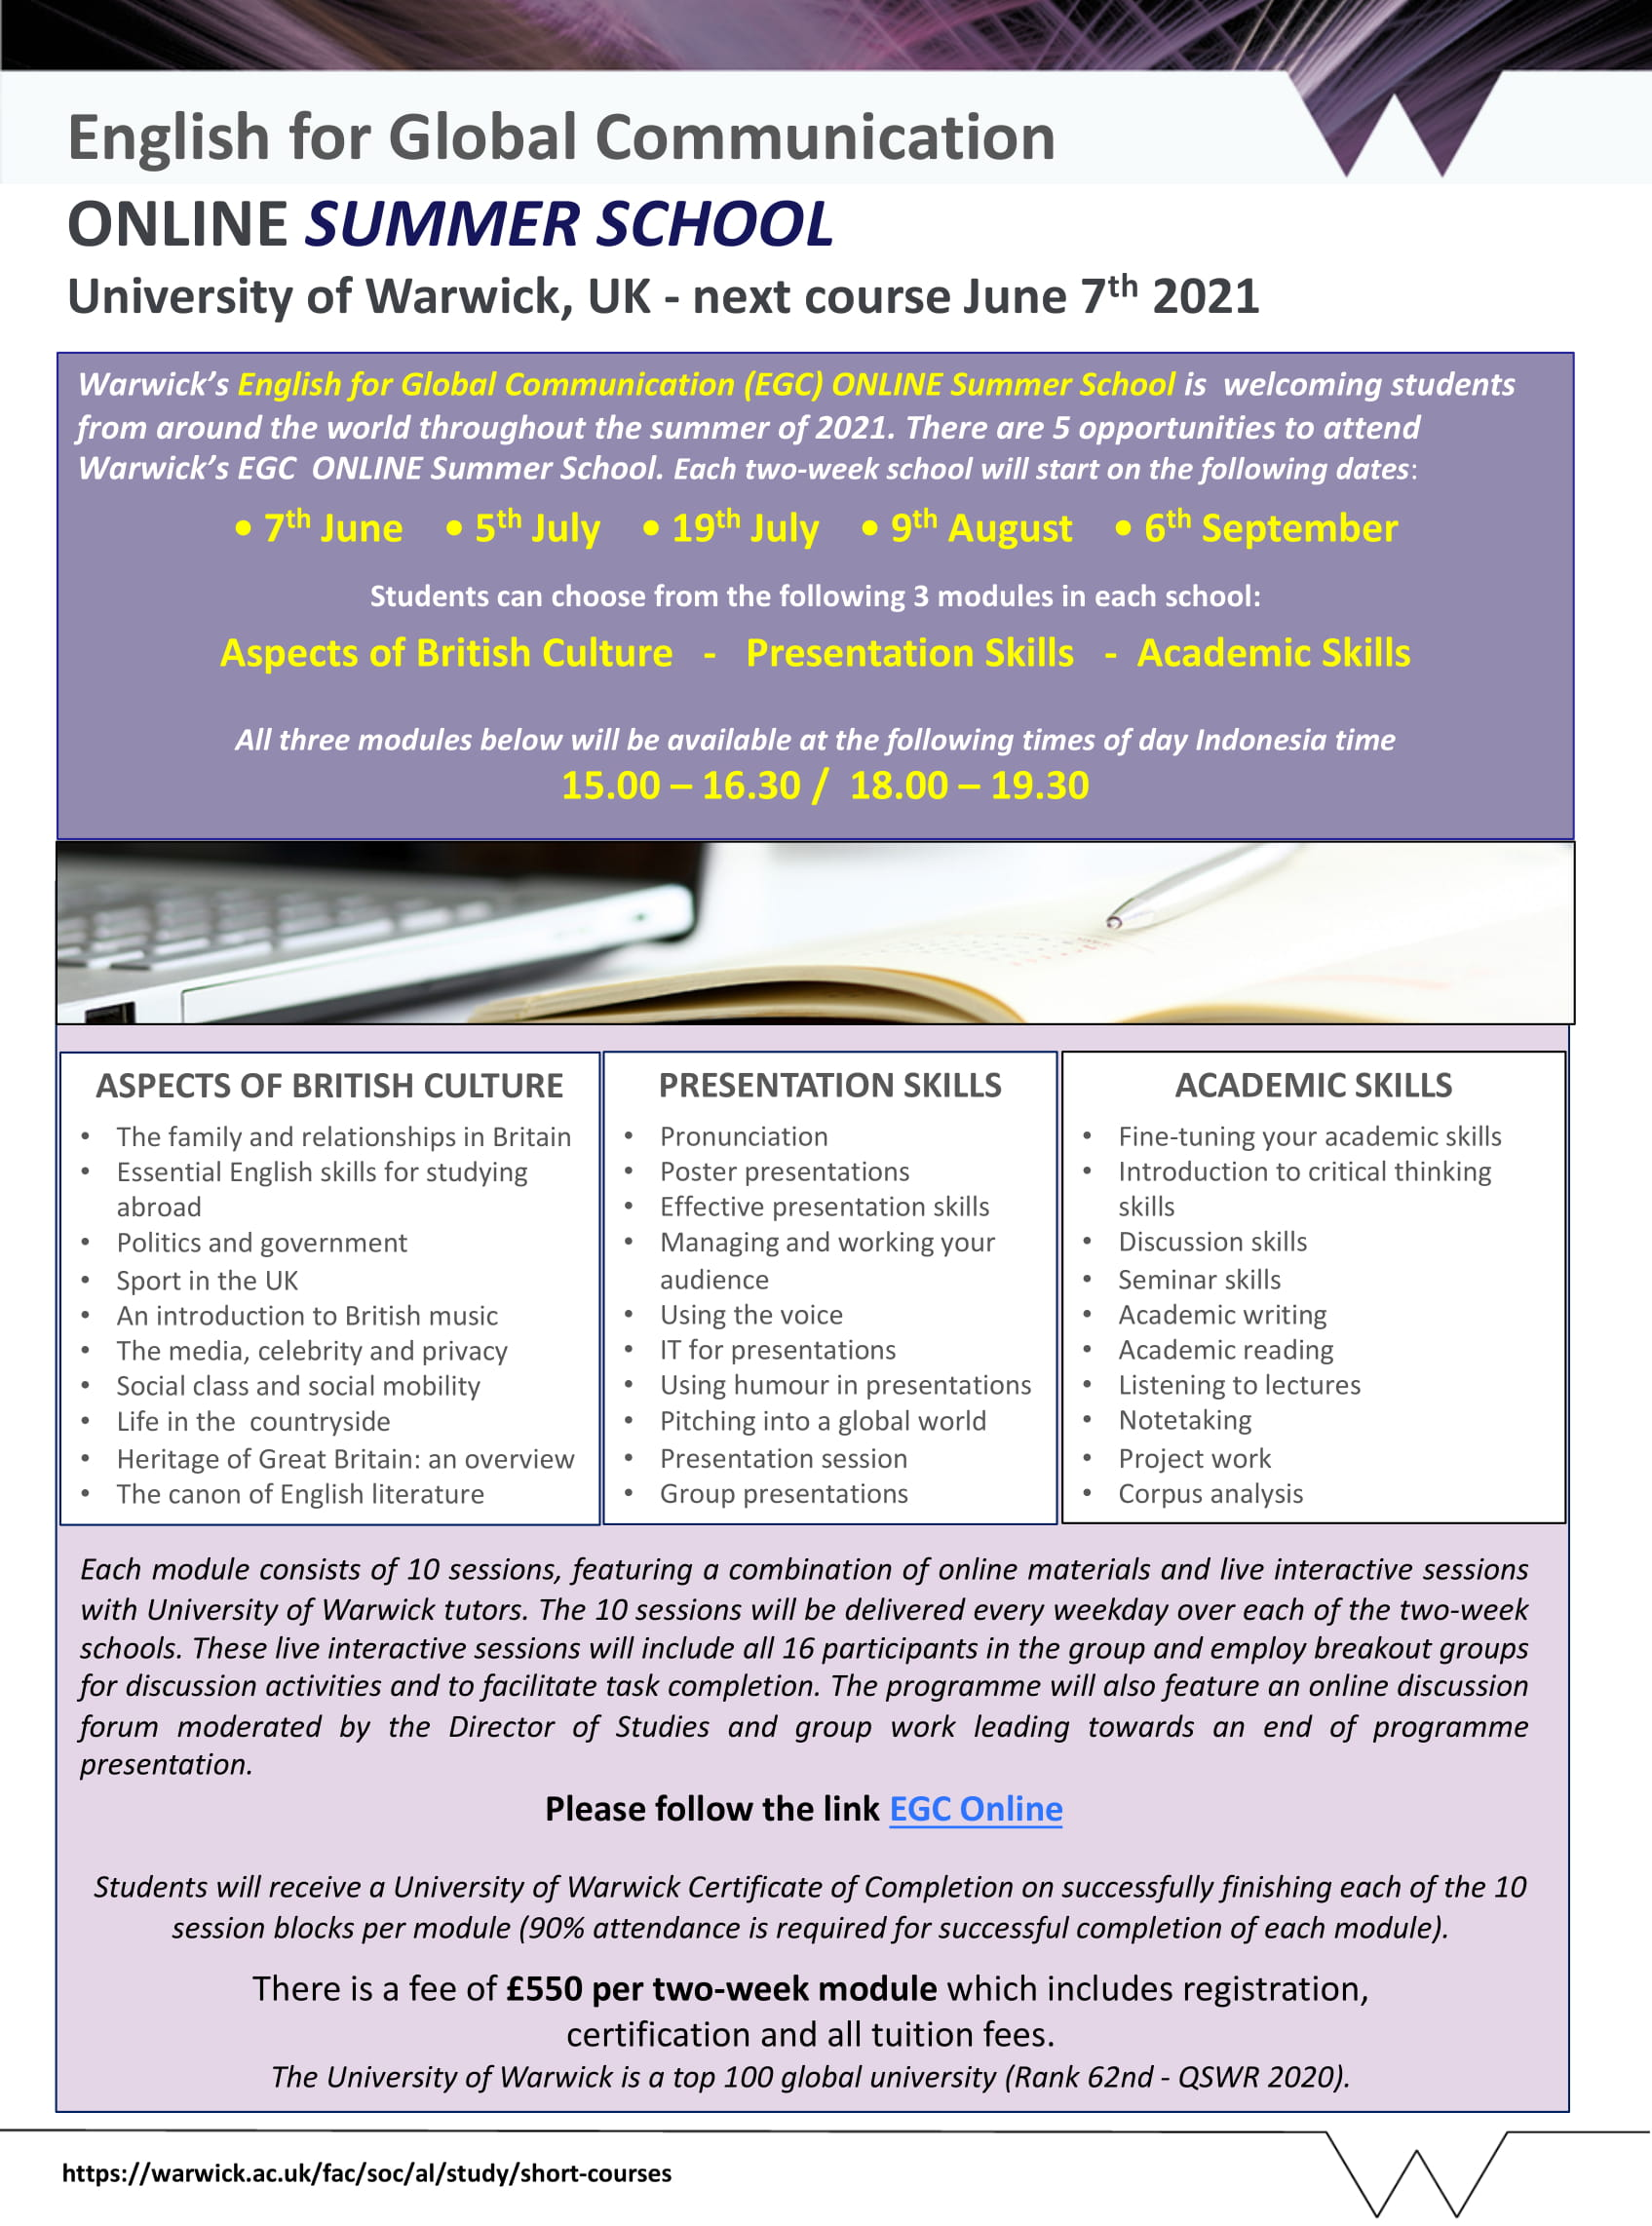 The University of Warwick's    English for Global Communication    ONLINE SUMMER SCHOOL